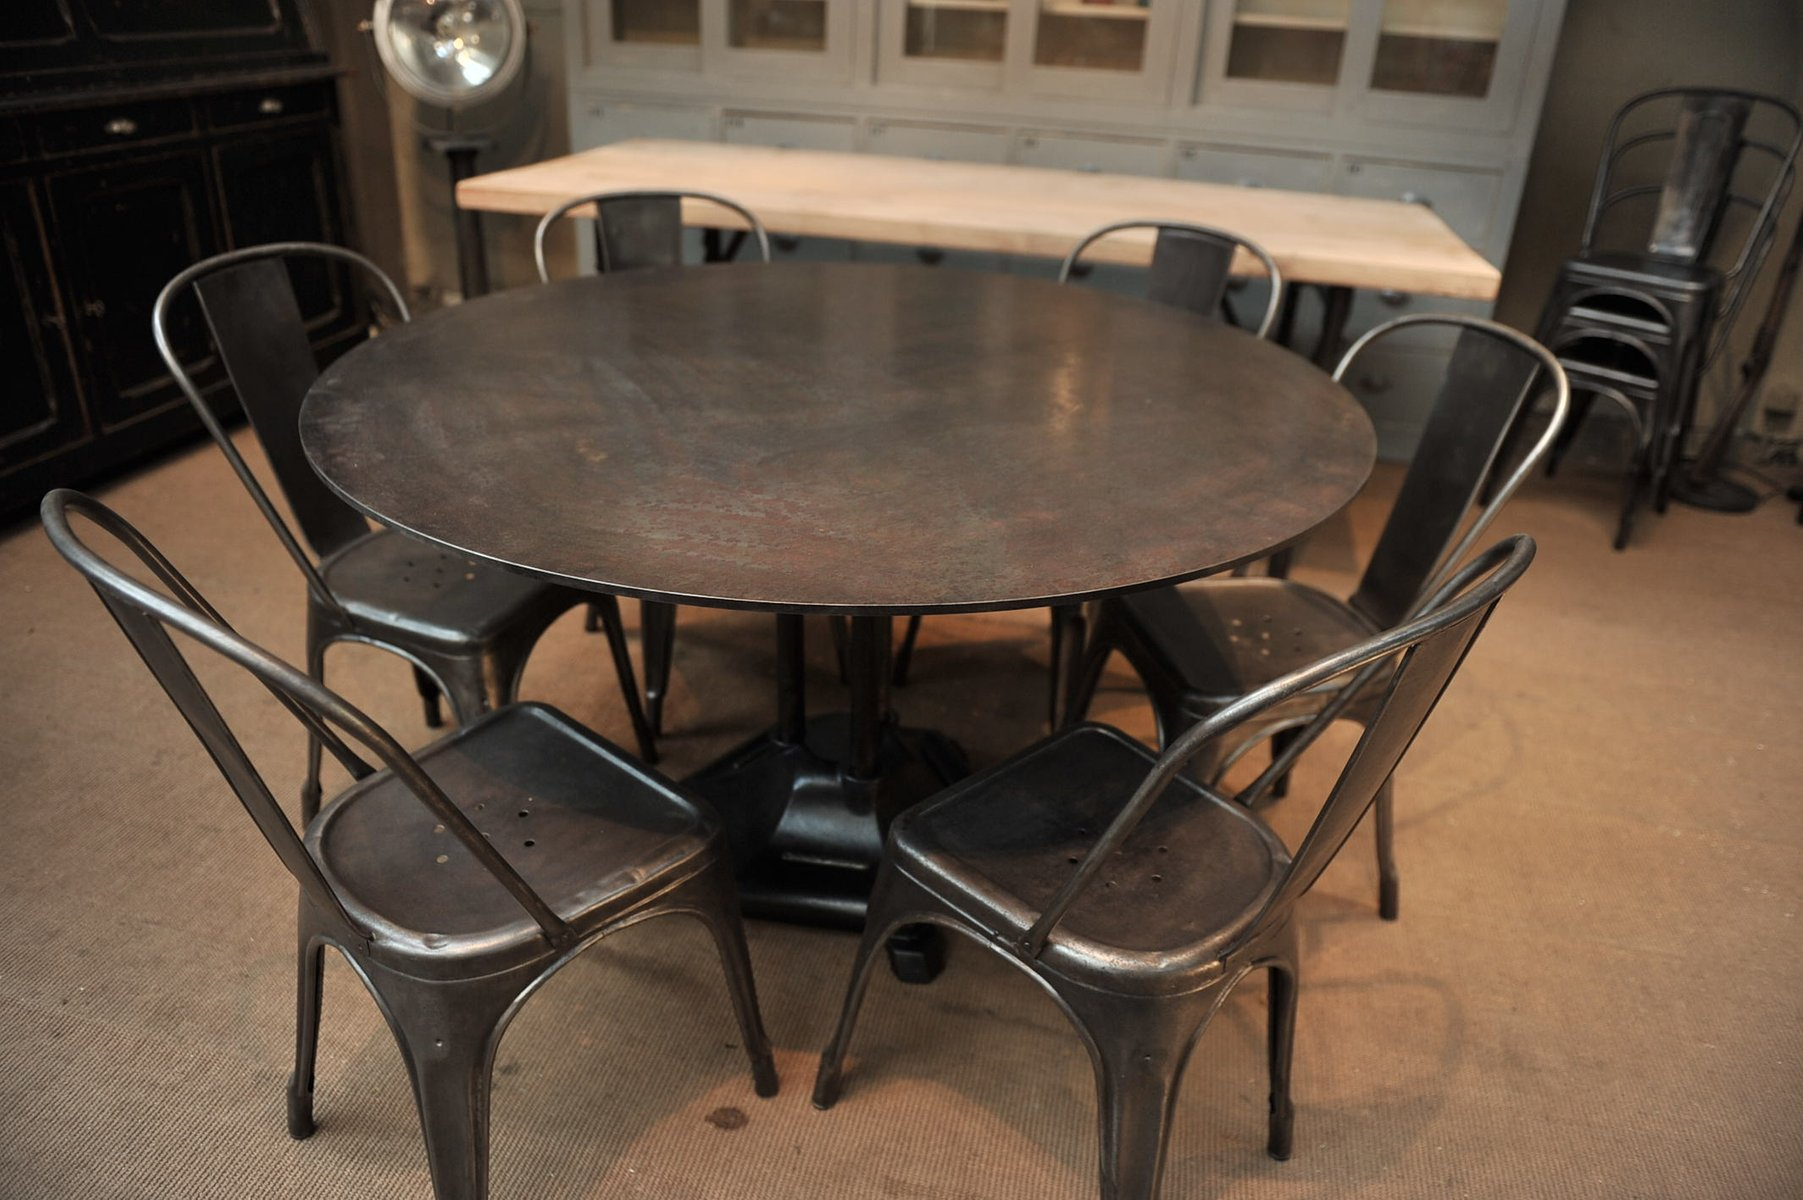 french industrial round iron dining table 1930s for sale at pamono. Black Bedroom Furniture Sets. Home Design Ideas